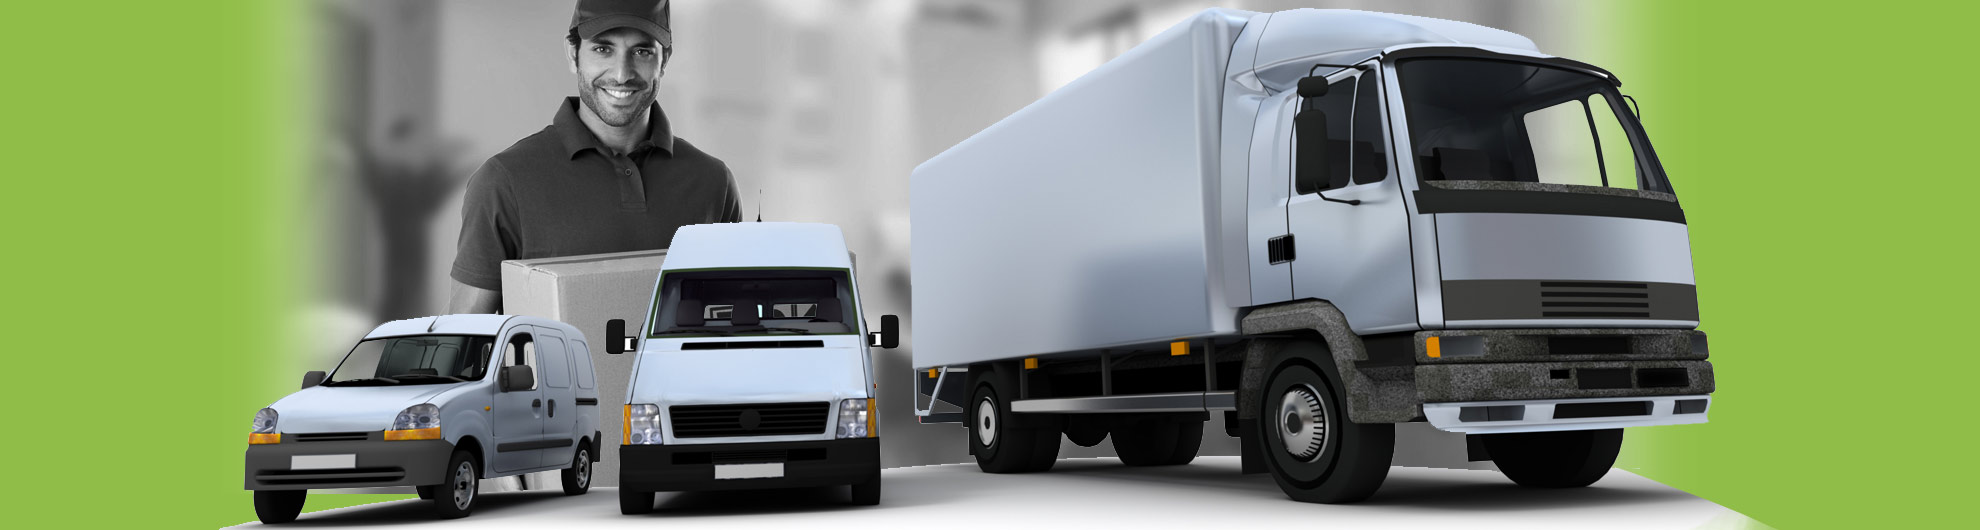 Ingolstadt  International Movers - Shipping Companies